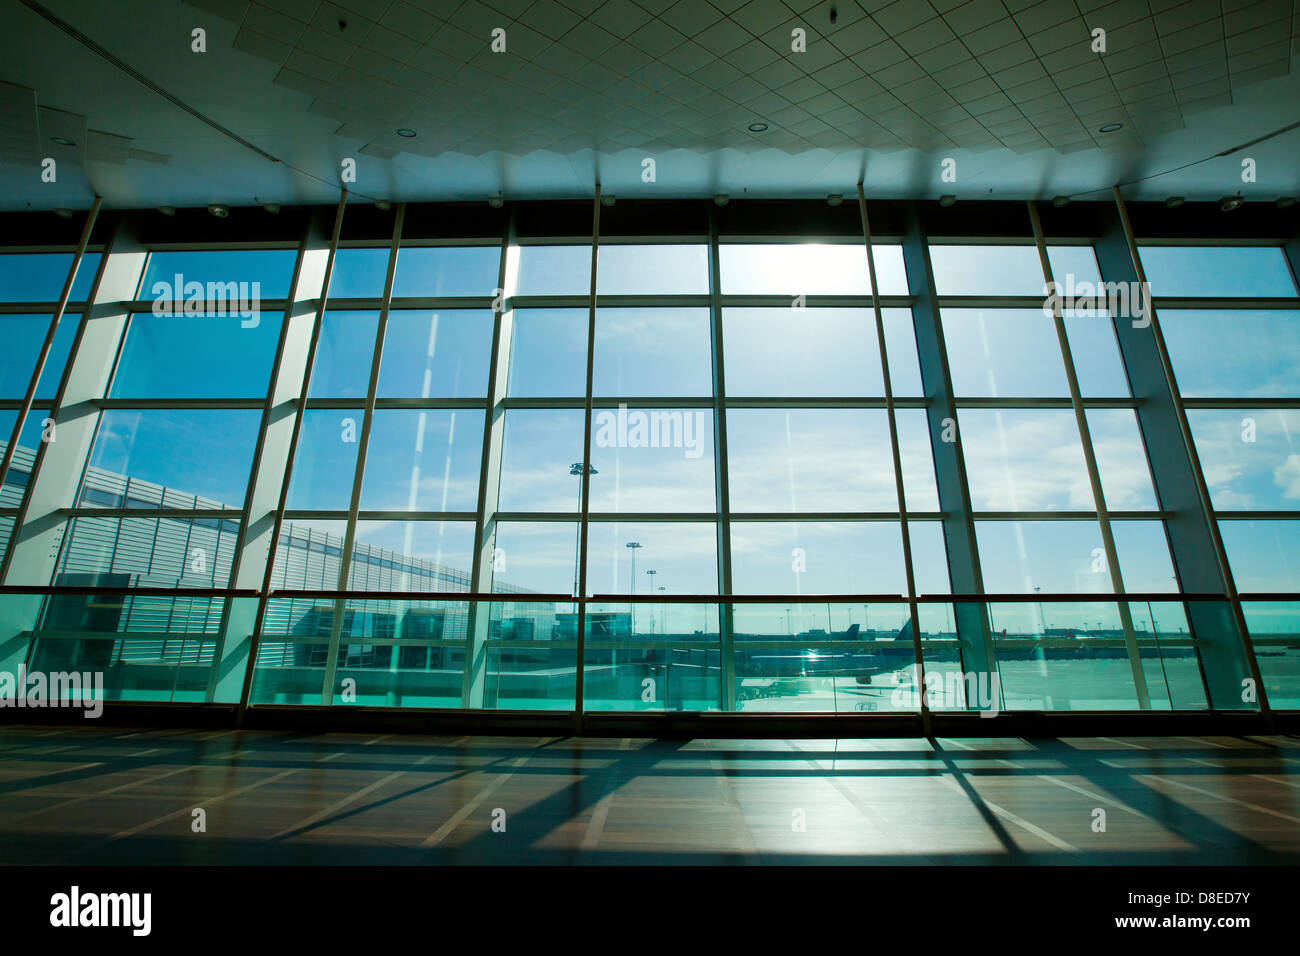 glass wall in the airport, abstract business interior - Stock Image